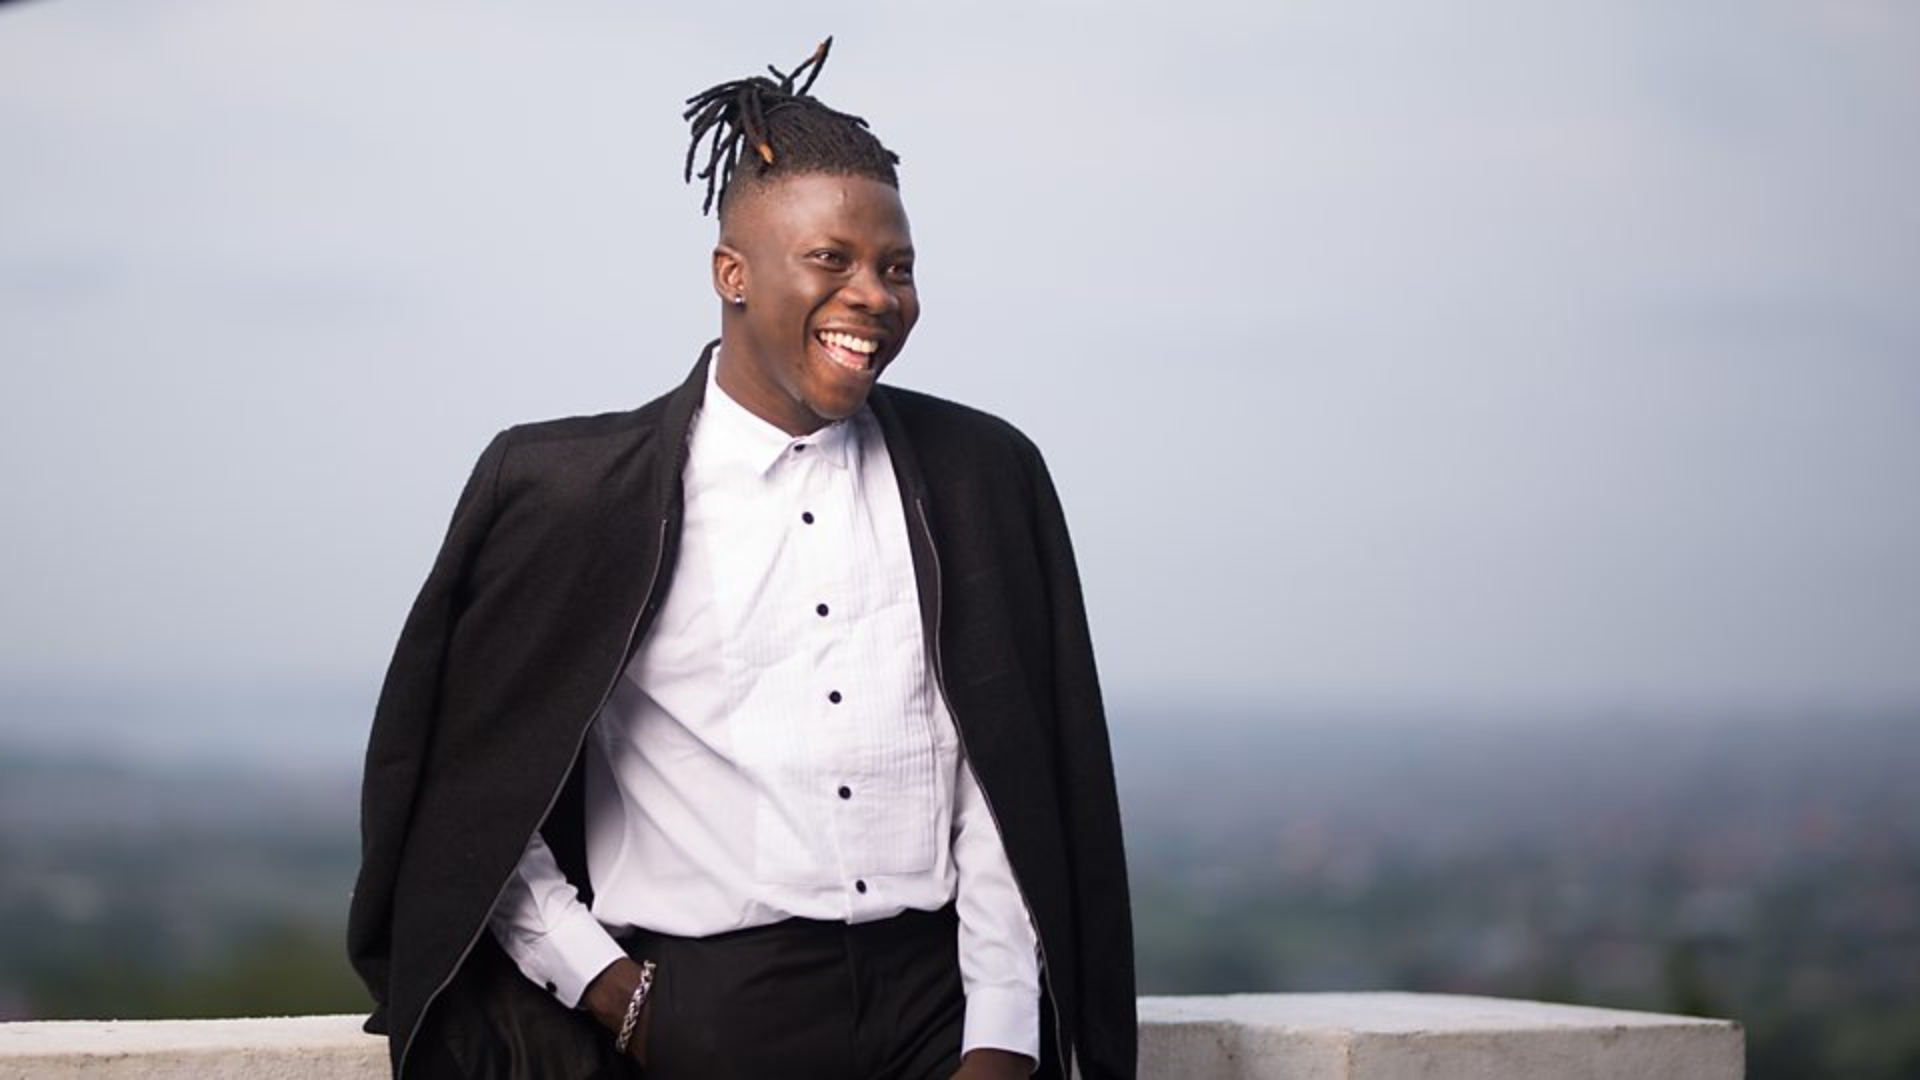 See this adorable sketch a fan did for stonebwoy